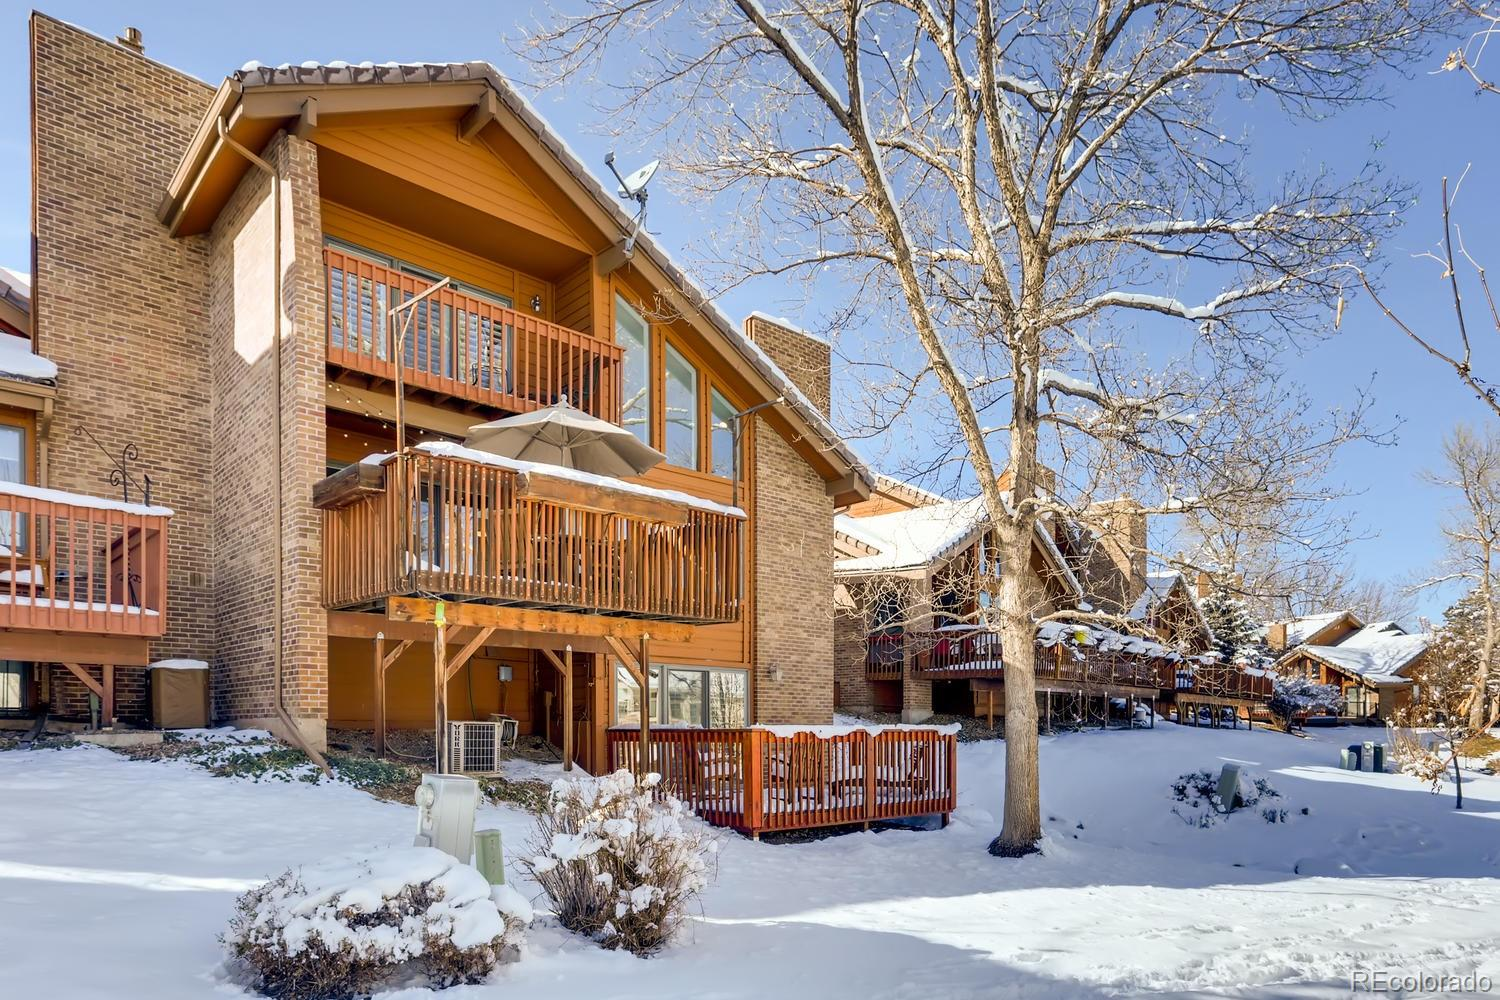 MLS# 2321846 - 18 - 5453 Coyote Canyon Way #A, Morrison, CO 80465